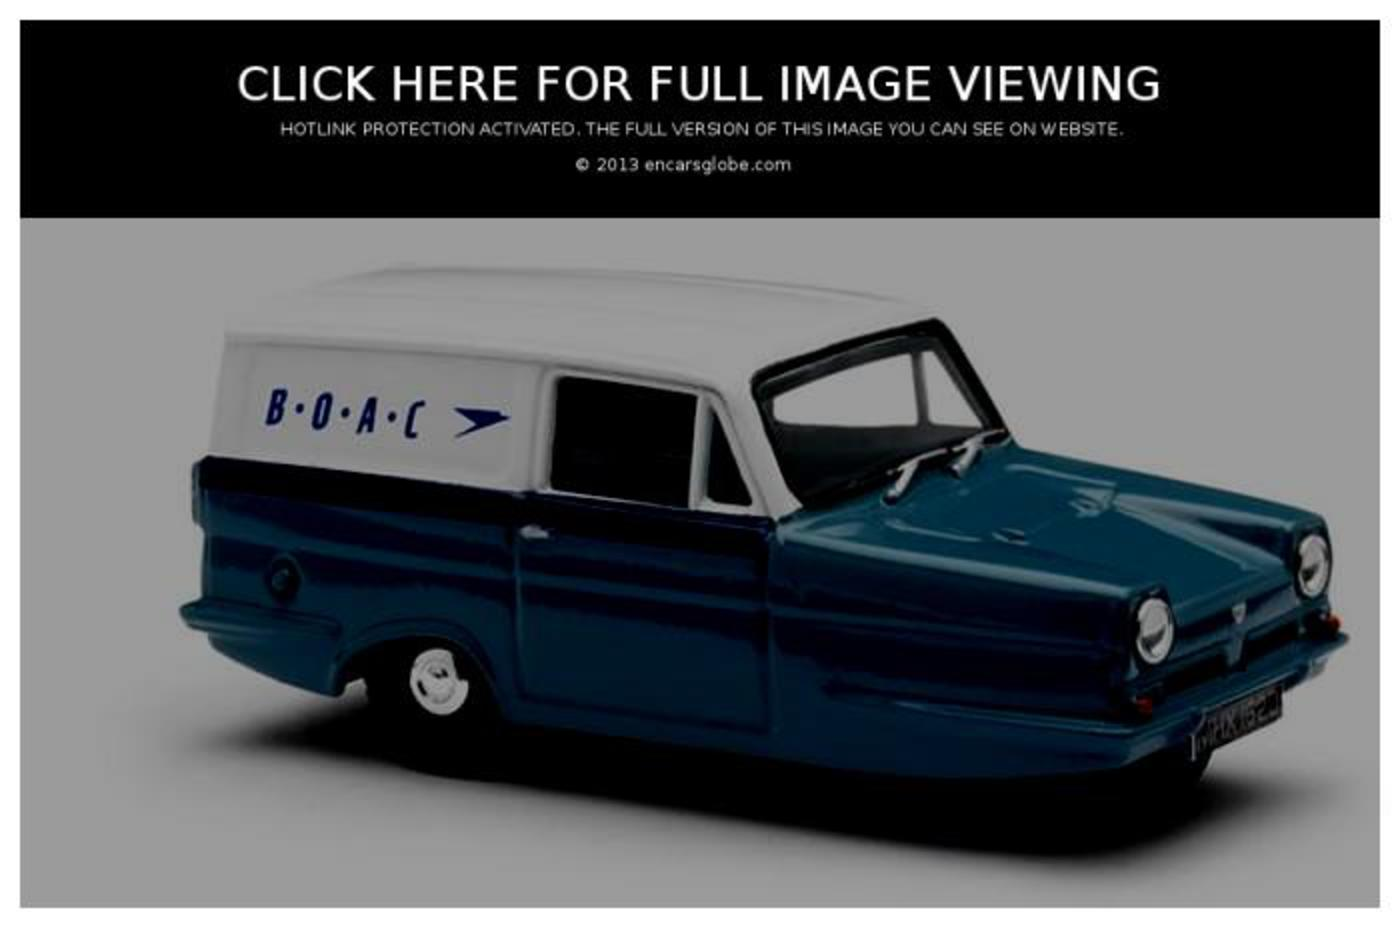 Reliant Regal Super Van 3 Photo Gallery: Photo #09 out of 12 ...